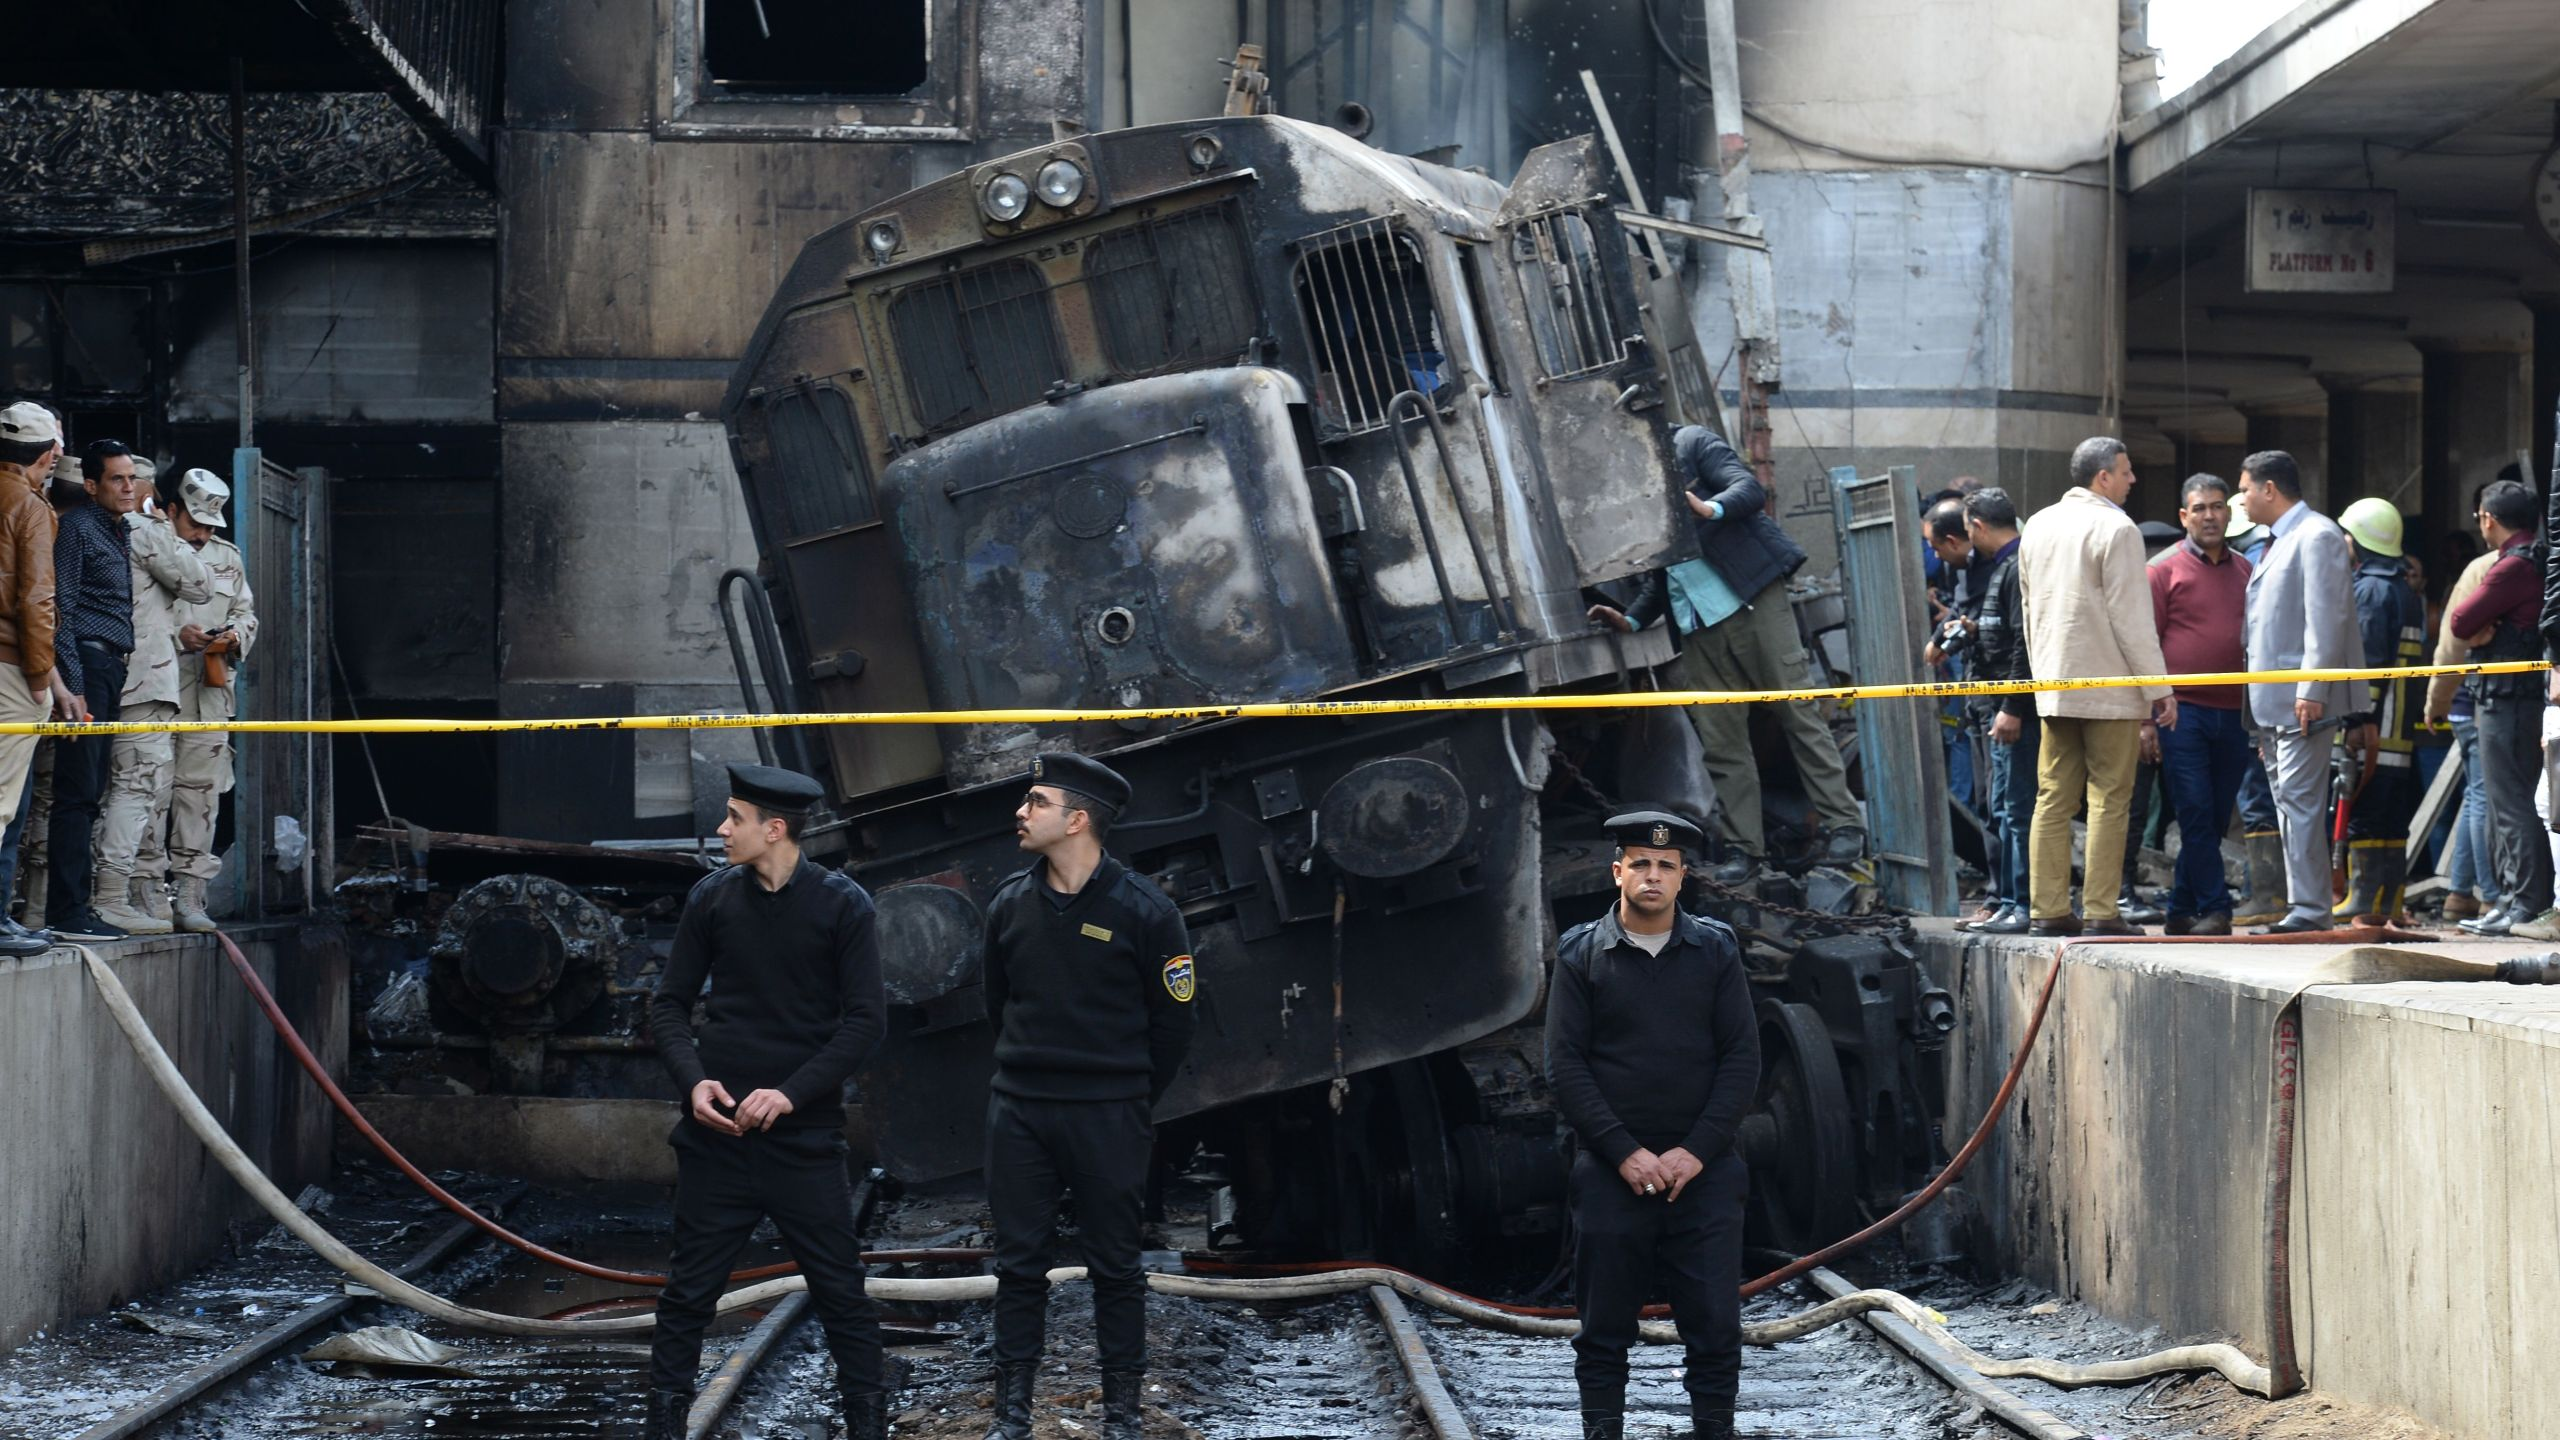 Members of the security forces and onlookers gather at the scene of a fiery train crash at the Egyptian capital Cairo's main railway station on Feb. 27, 2019. (Credit: MOHAMED EL-SHAHED/AFP/Getty Images)